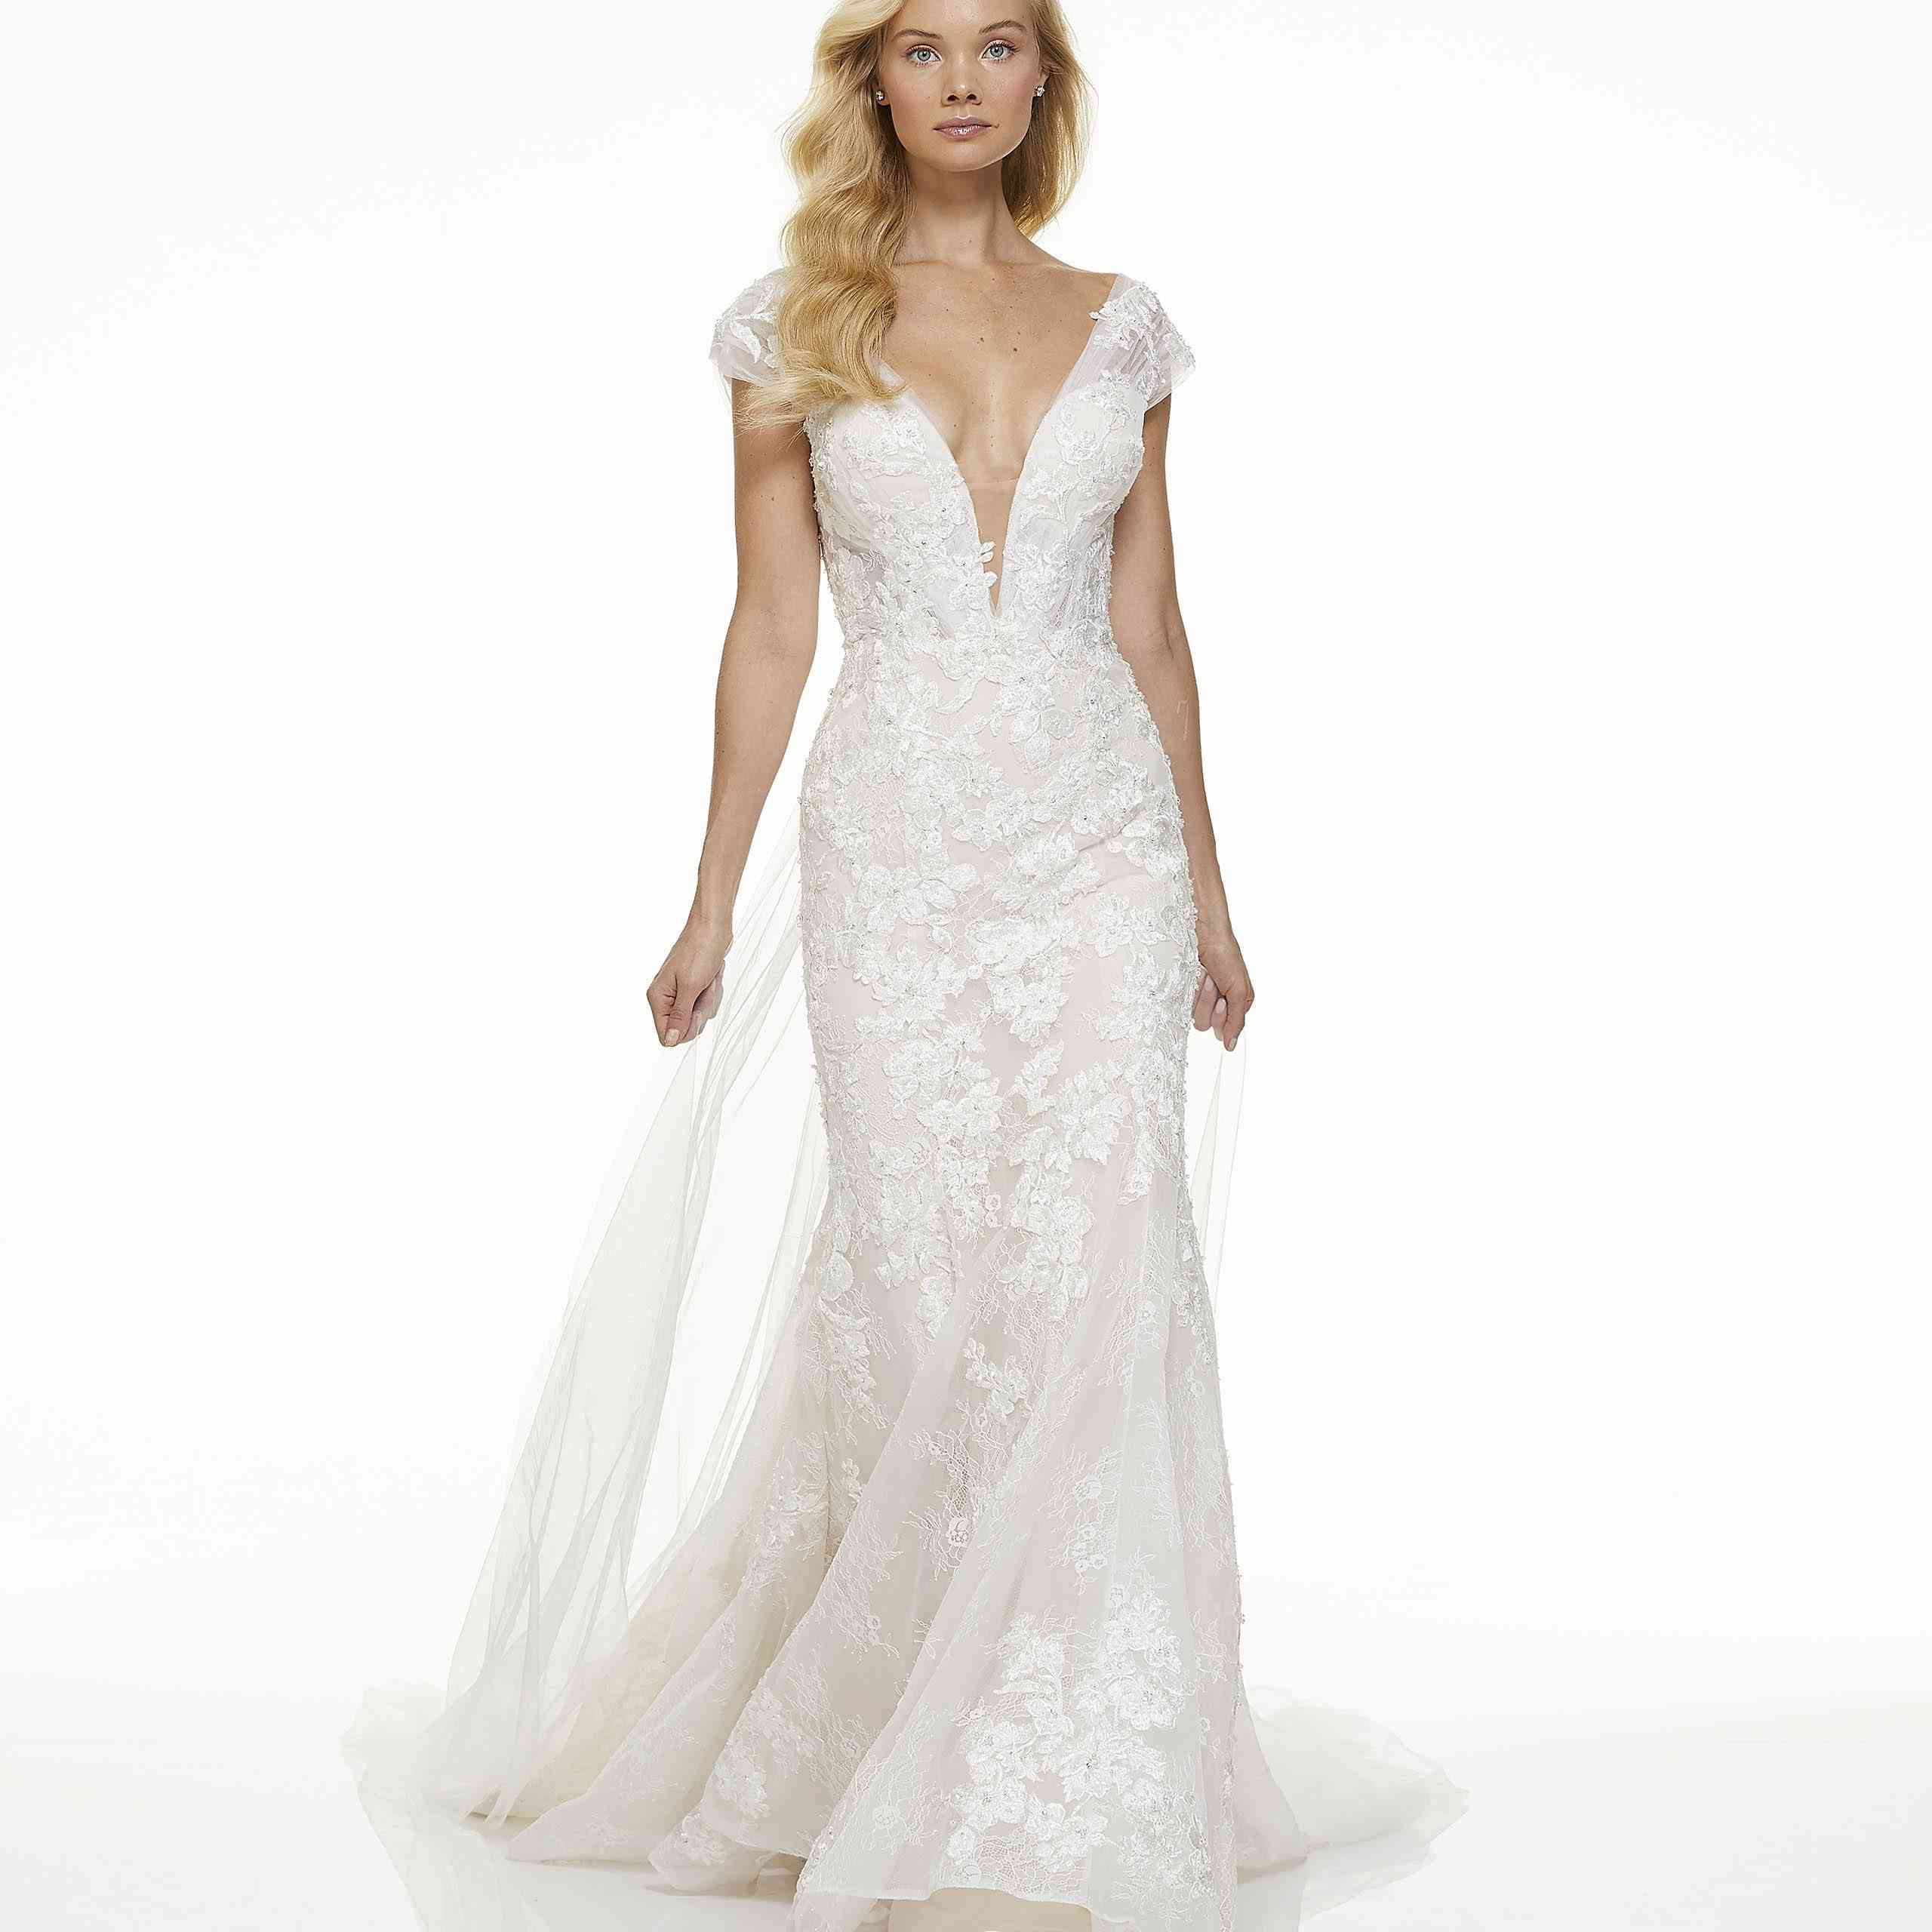 Model in plunging fit-and-flare wedding dress